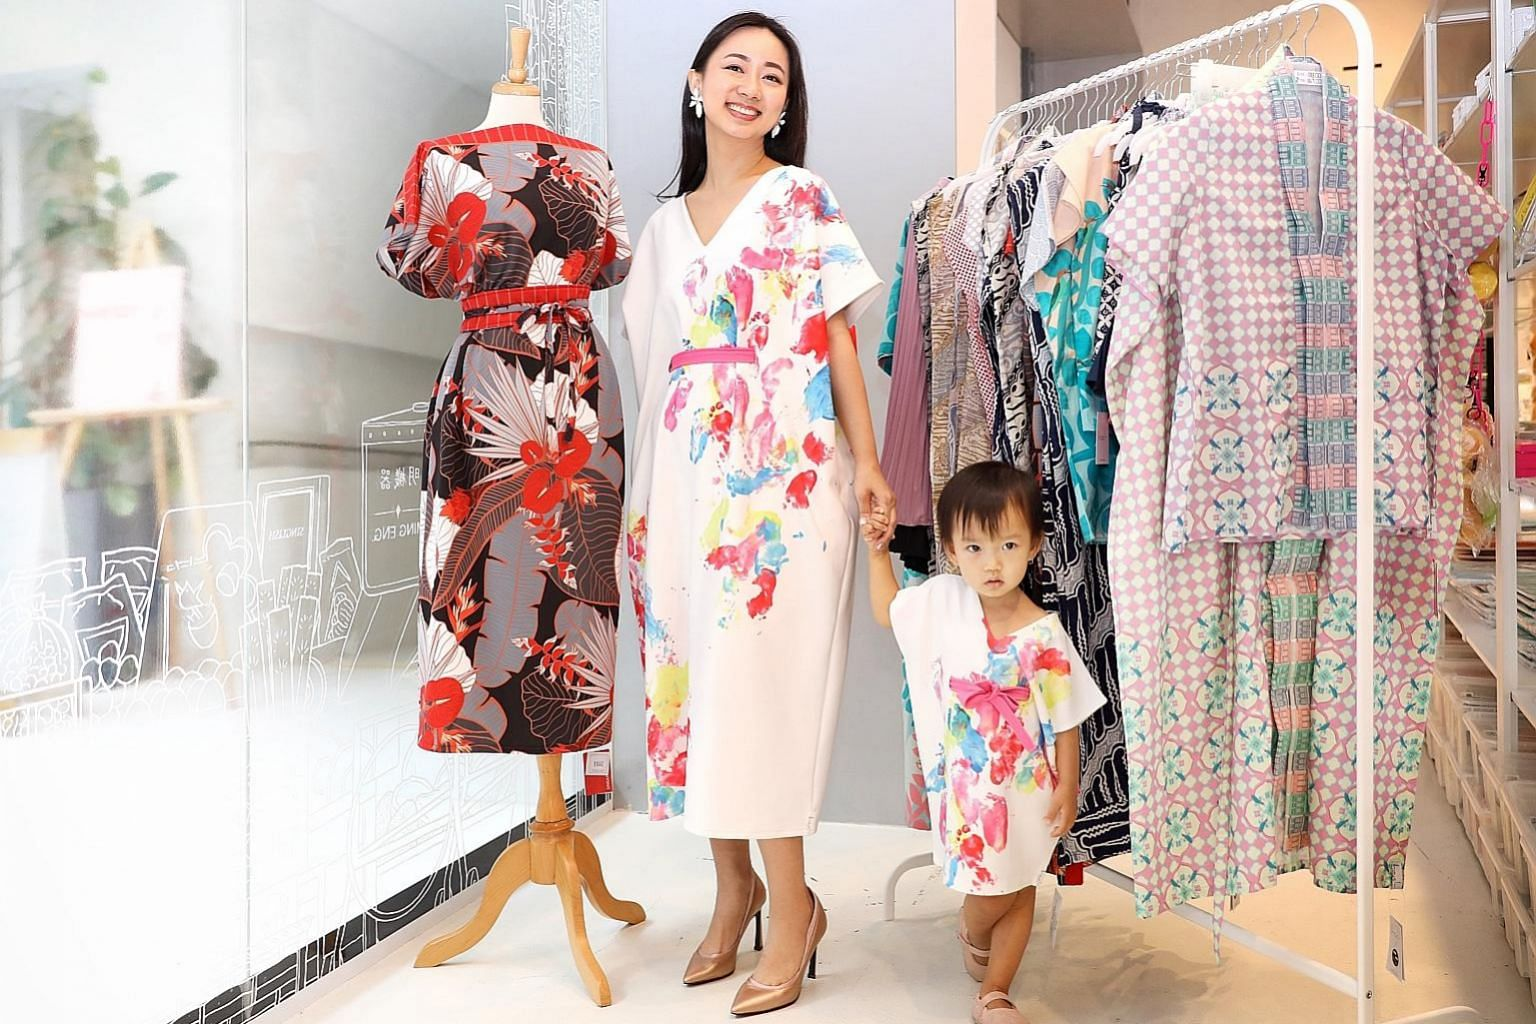 Singapore-based Indonesian designer Anseina Eliza and her daughter Allytheia in her label Ans.Ein, which offers customisation options such as personalised prints. Tops start at $68.